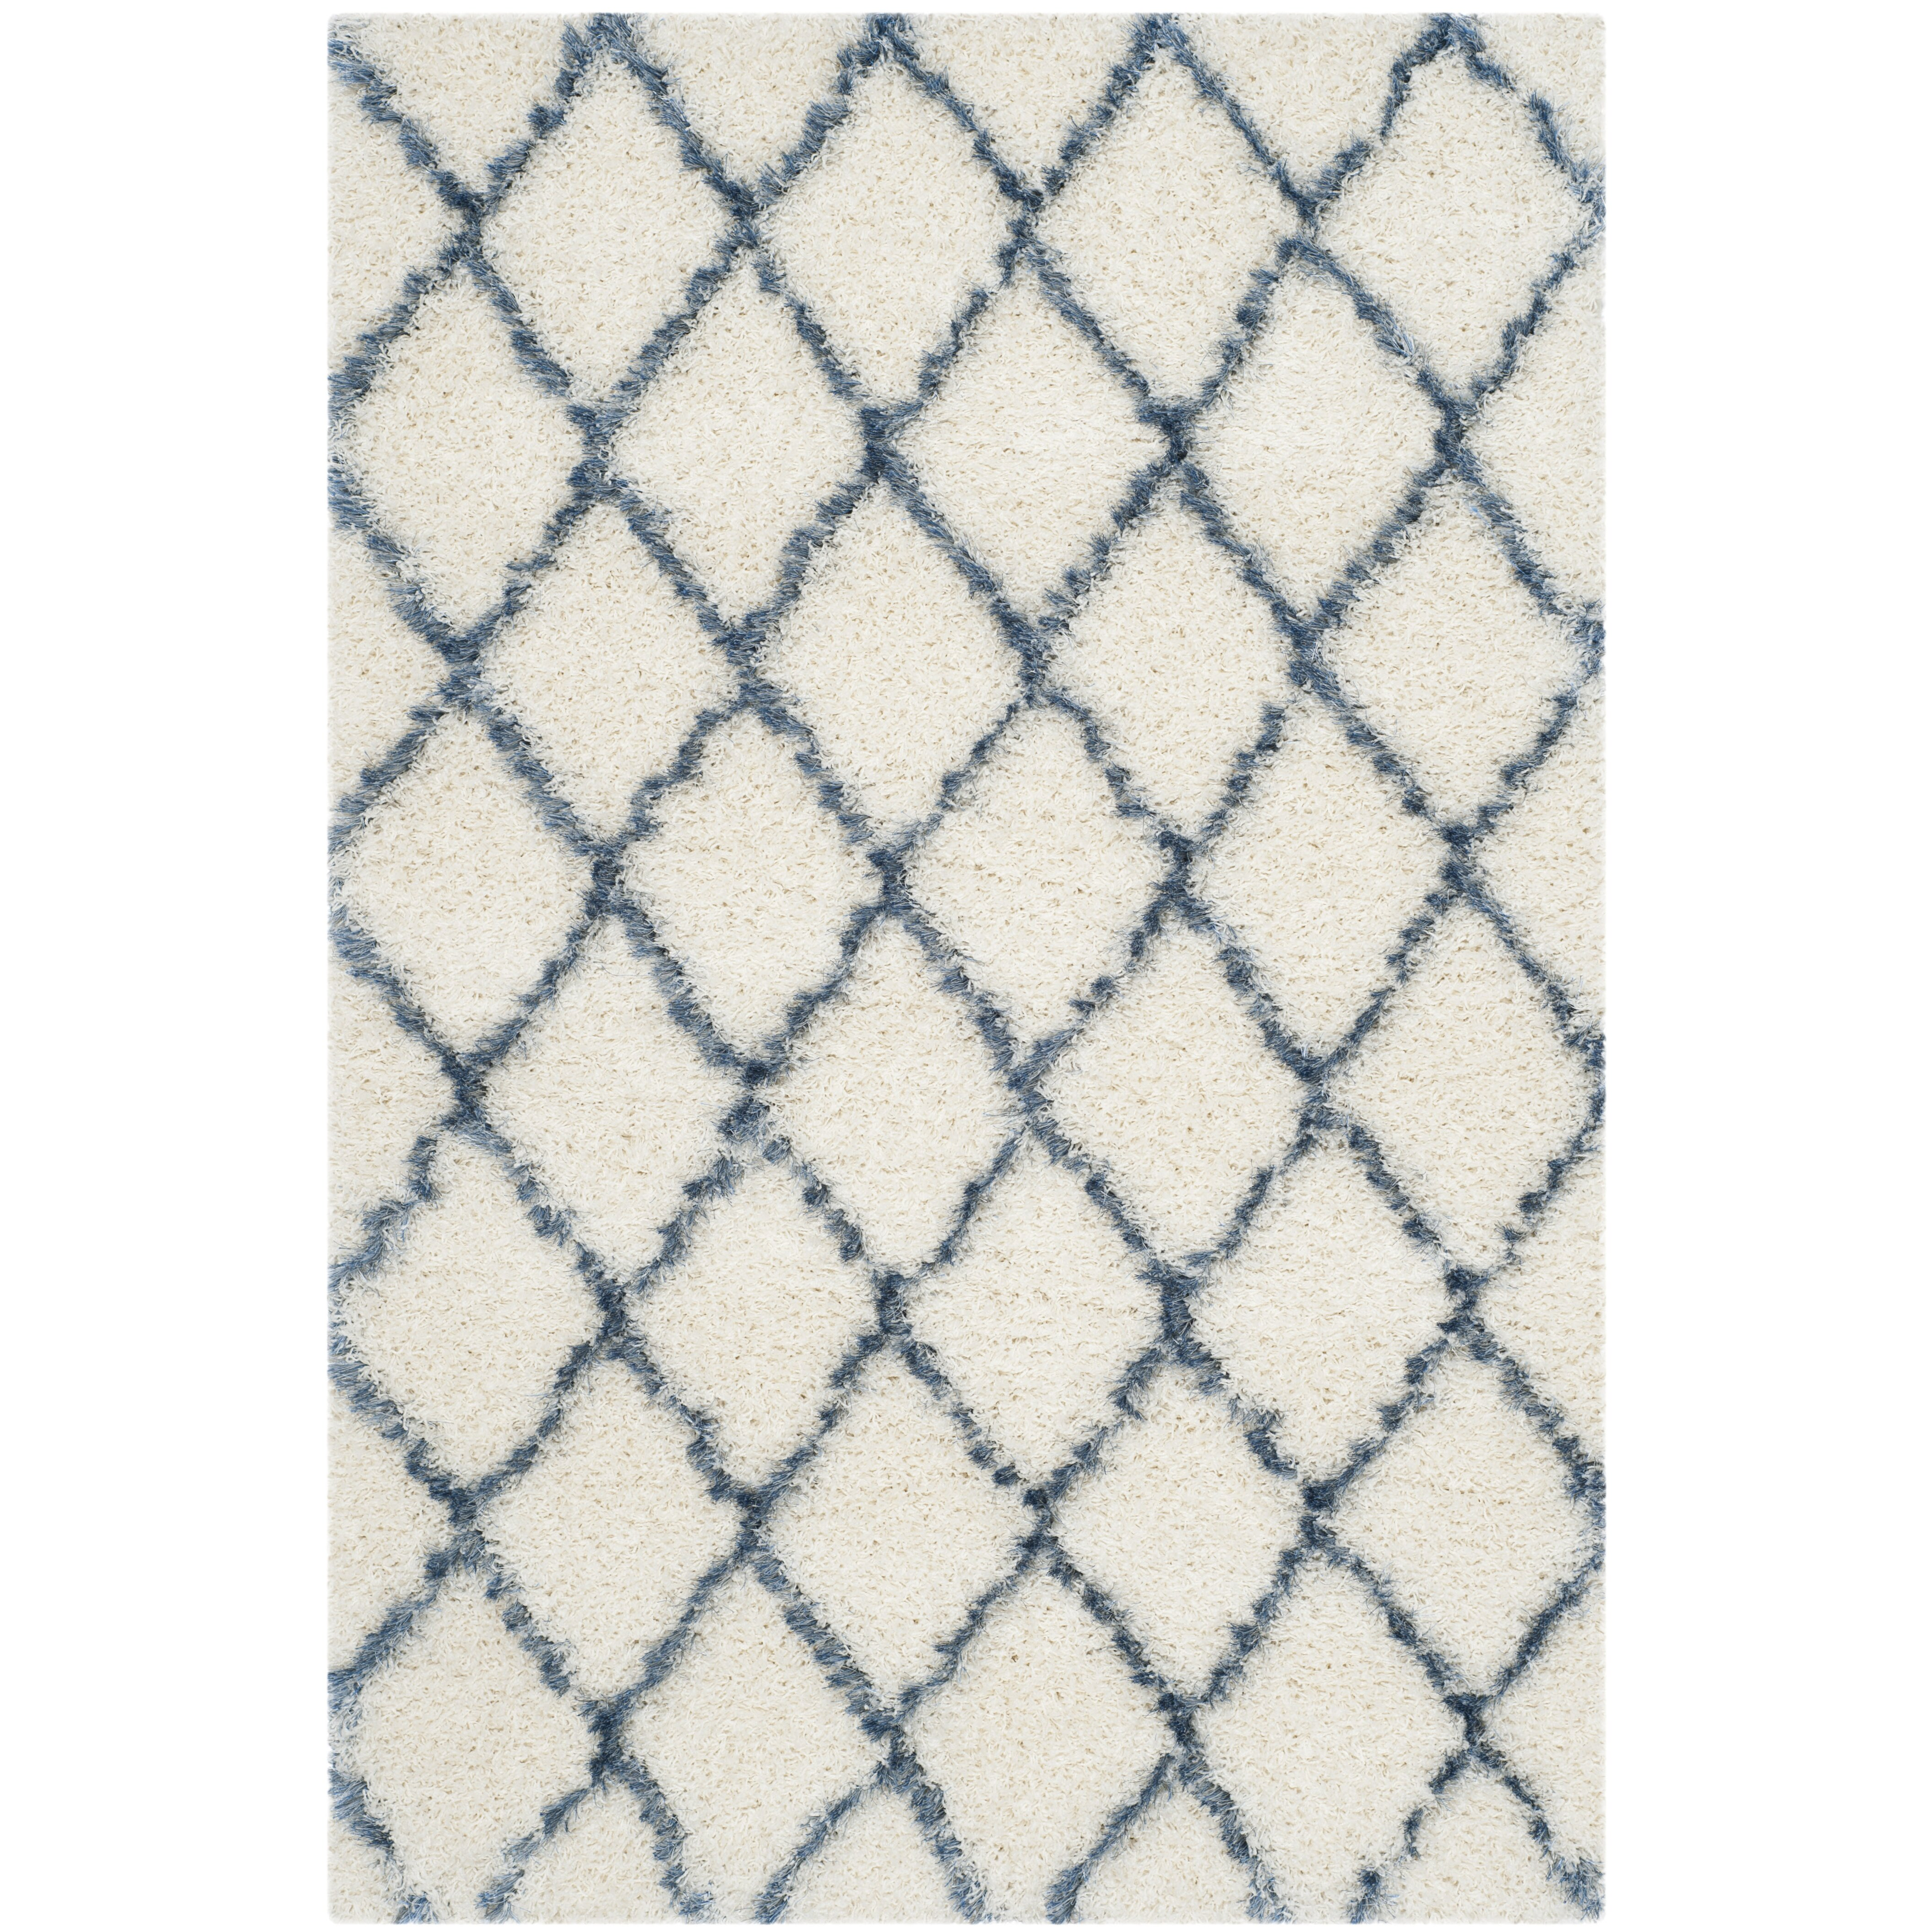 Safavieh Moroccan Blue And Black Area Rug: Safavieh Moroccan Shag Ivory & Blue Geometric Contemporary